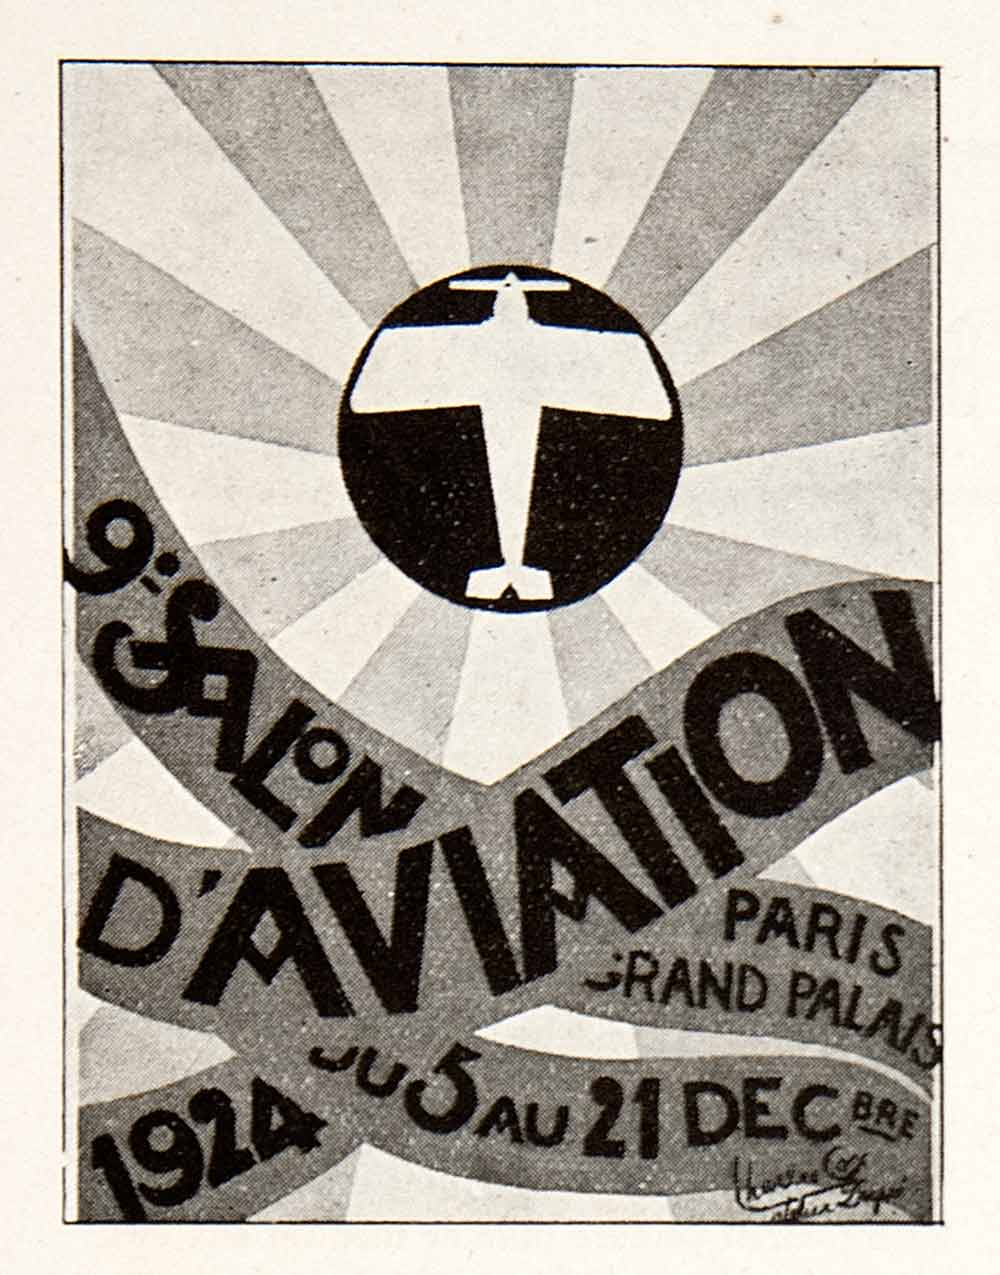 1925 Print Salon D'Aviation Grand Palais Paris Plane Trade Show Aeronautics VEN3